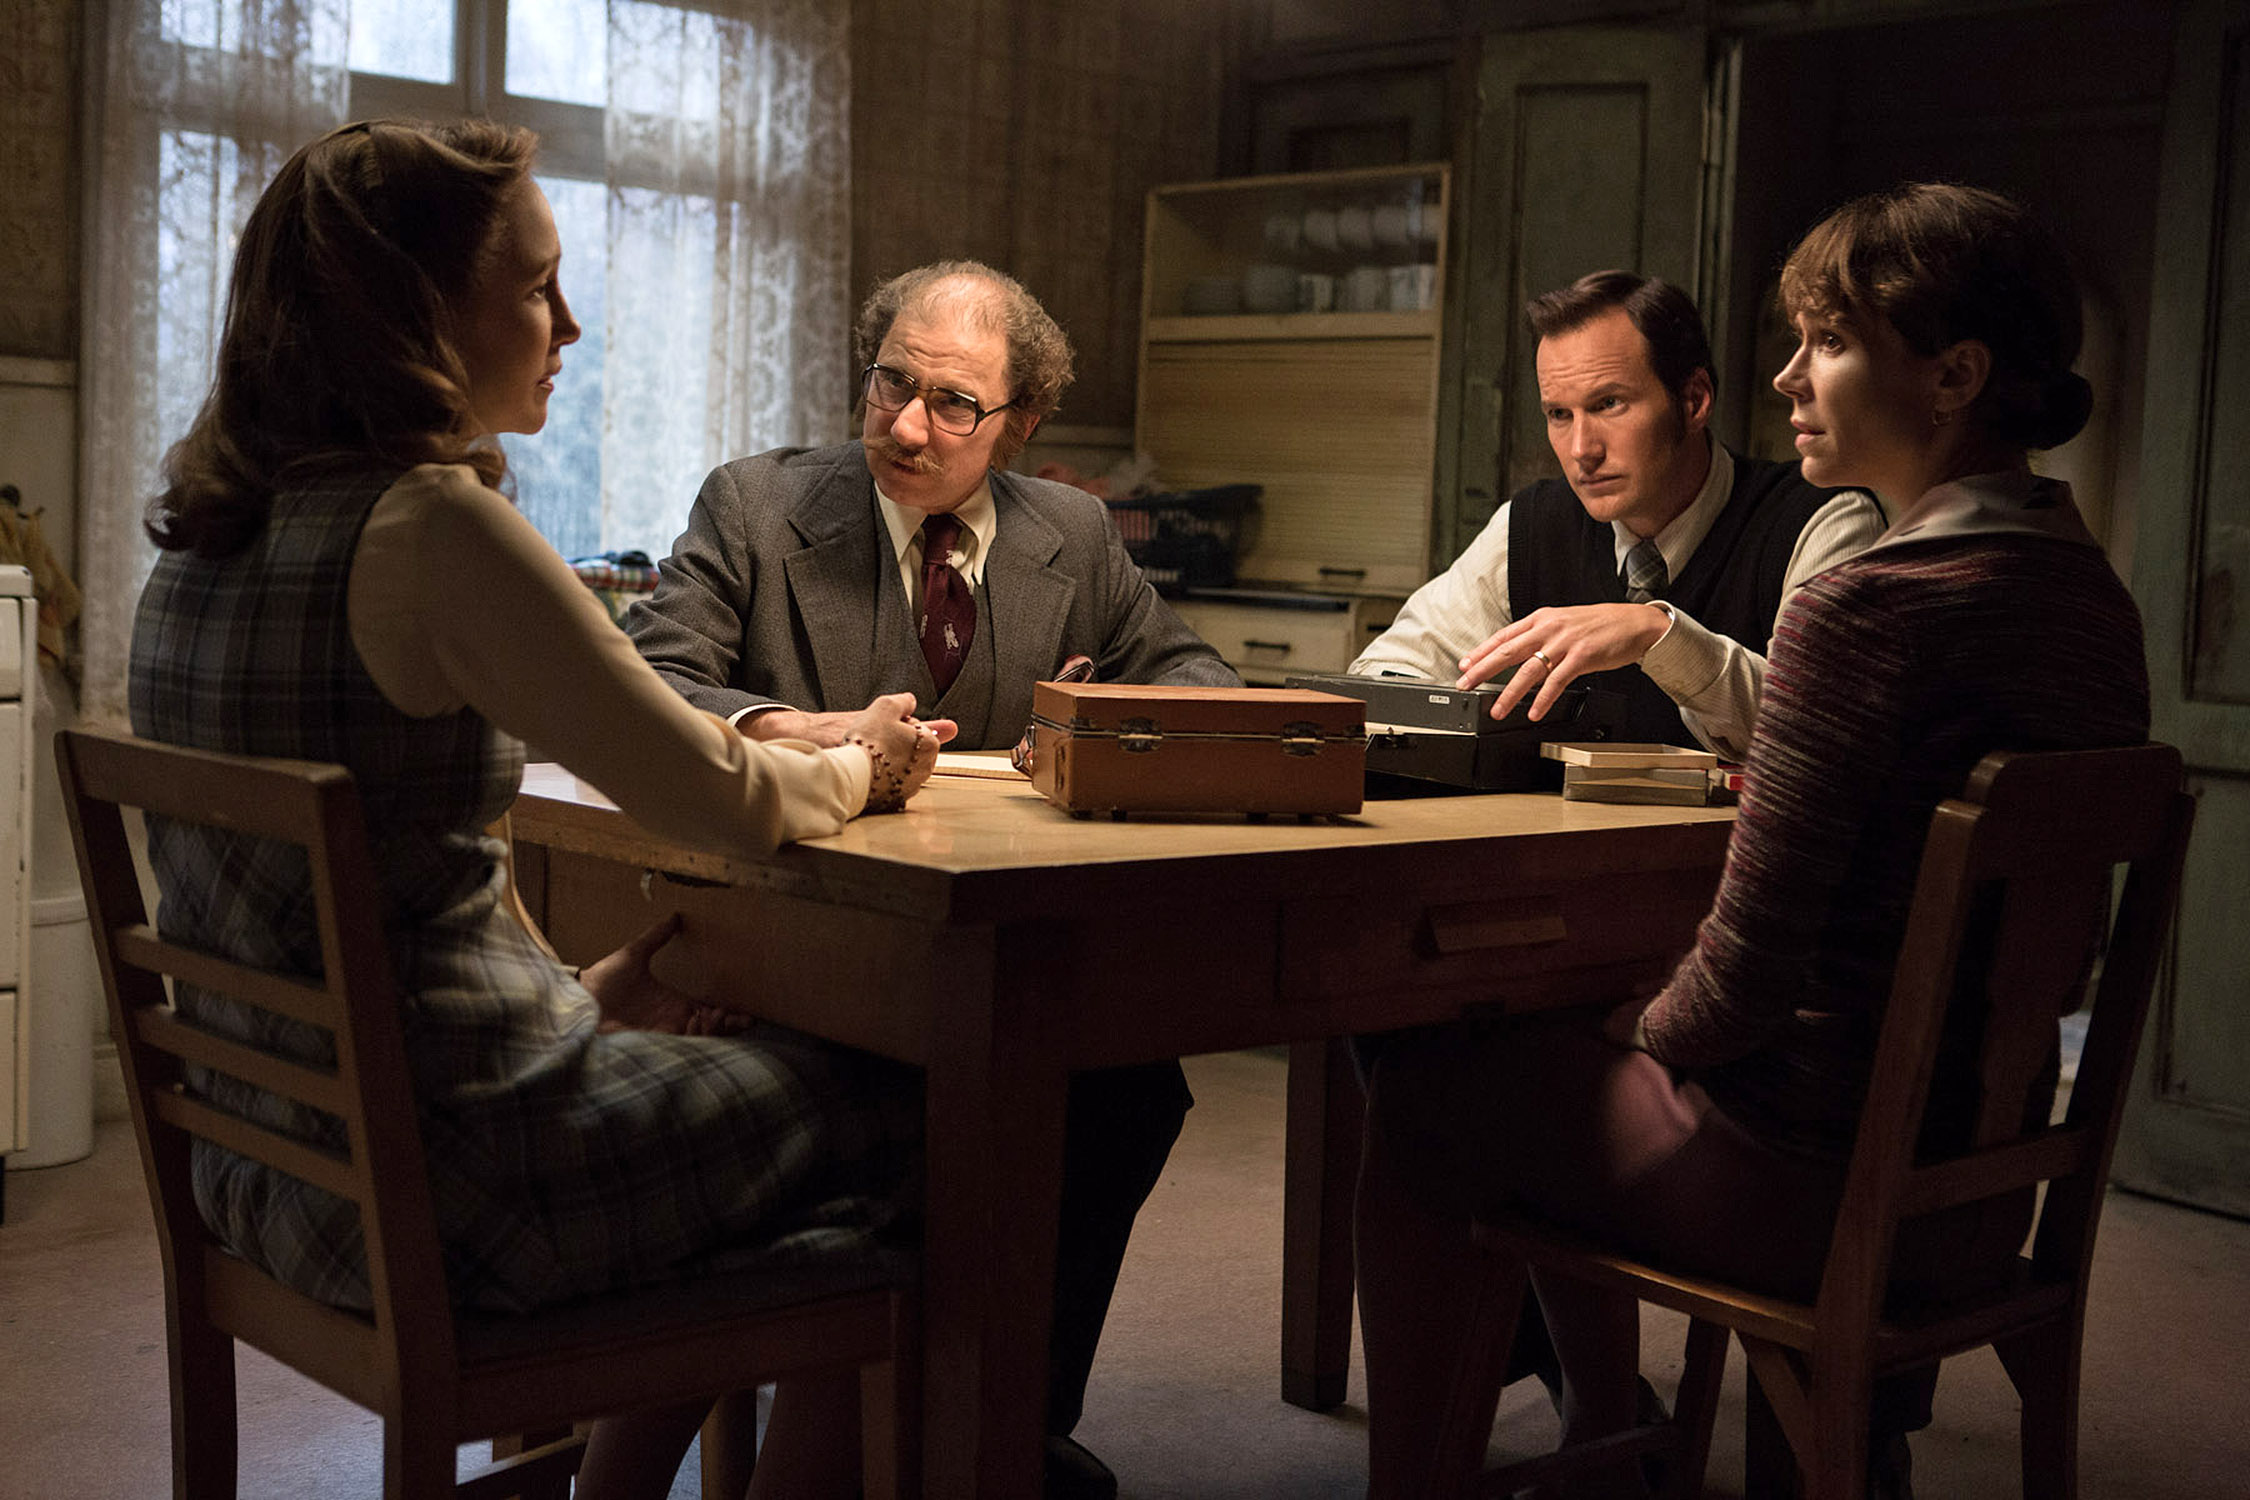 The Conjuring 2 starring Vera Farmiga and Patrick Wilson